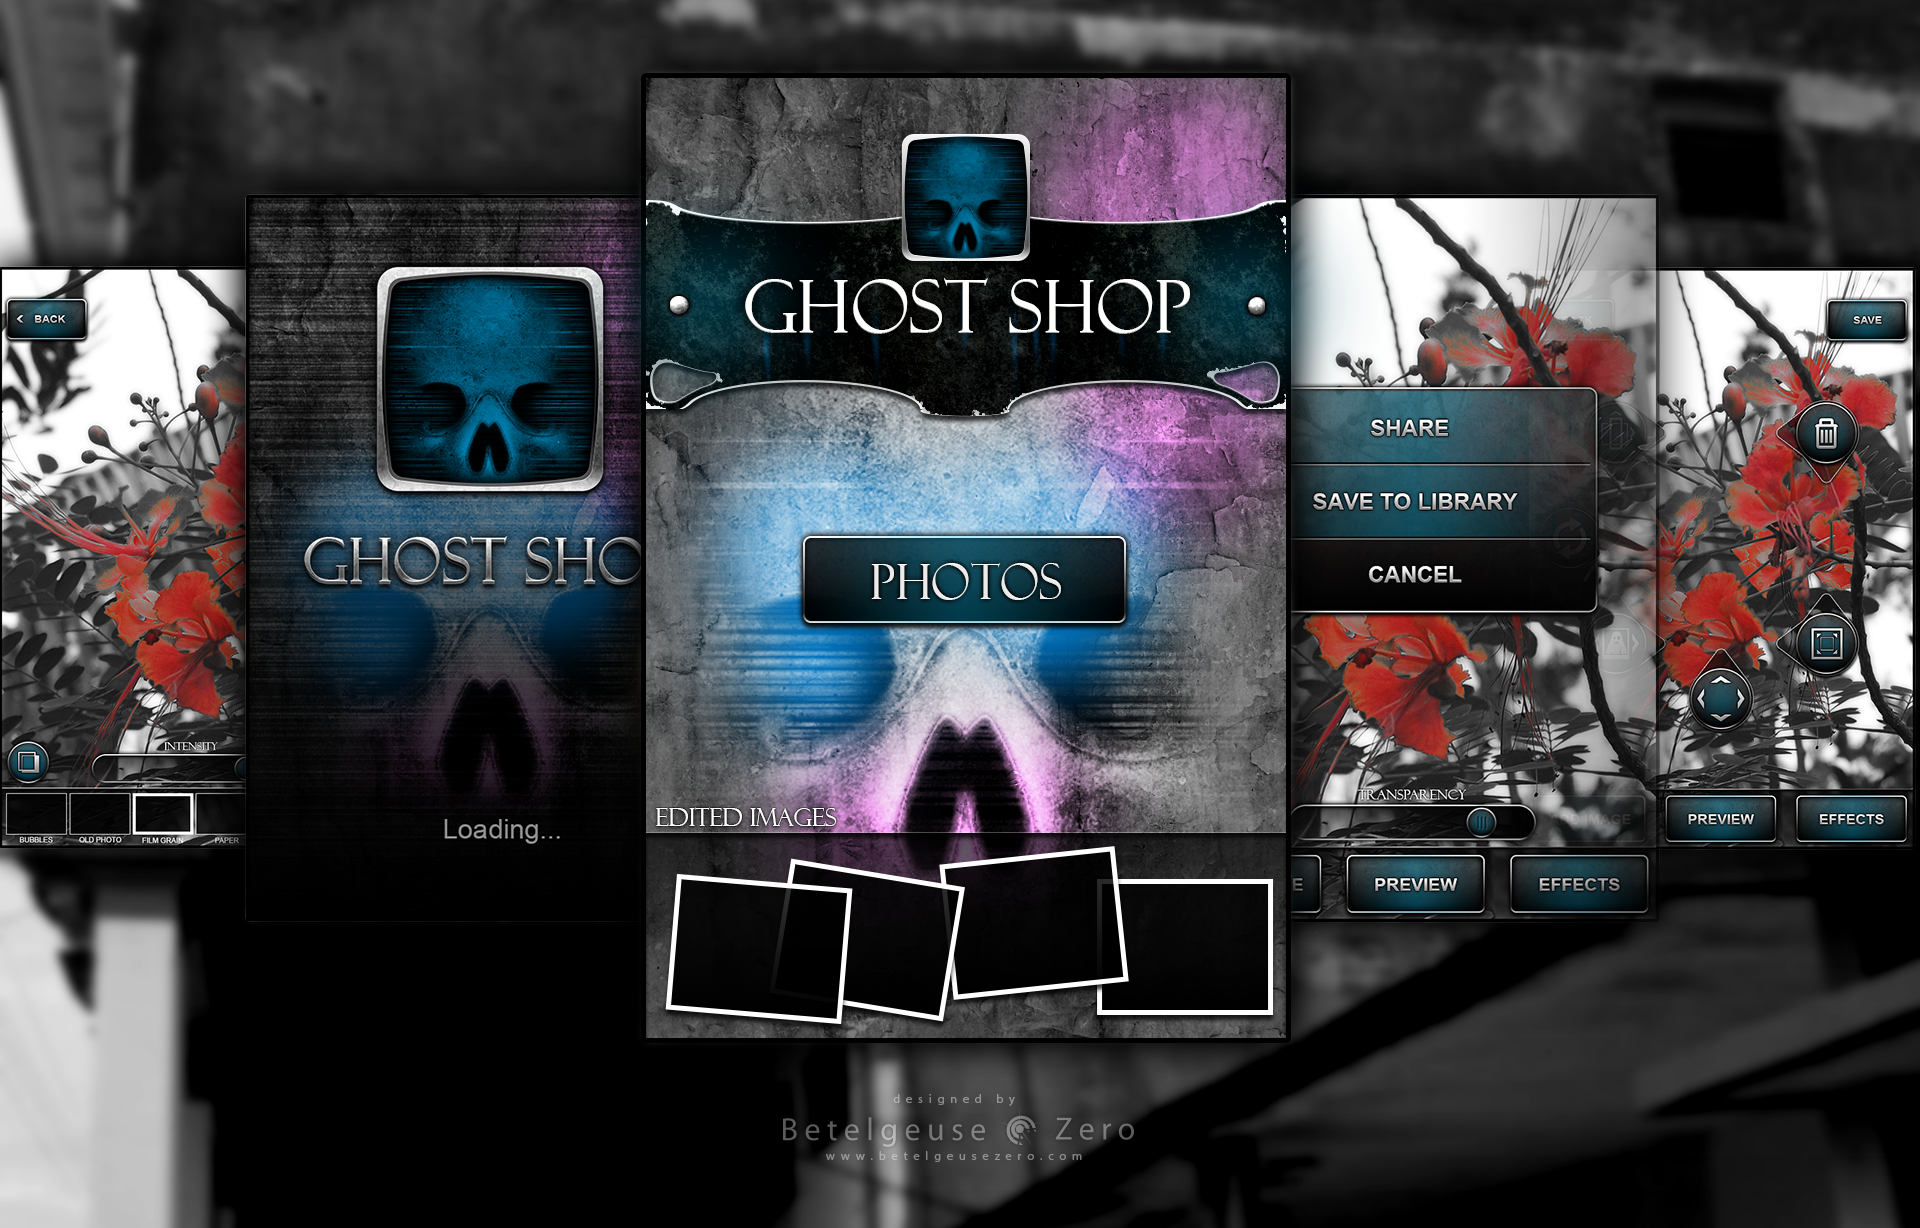 Ghost Shop app UI design